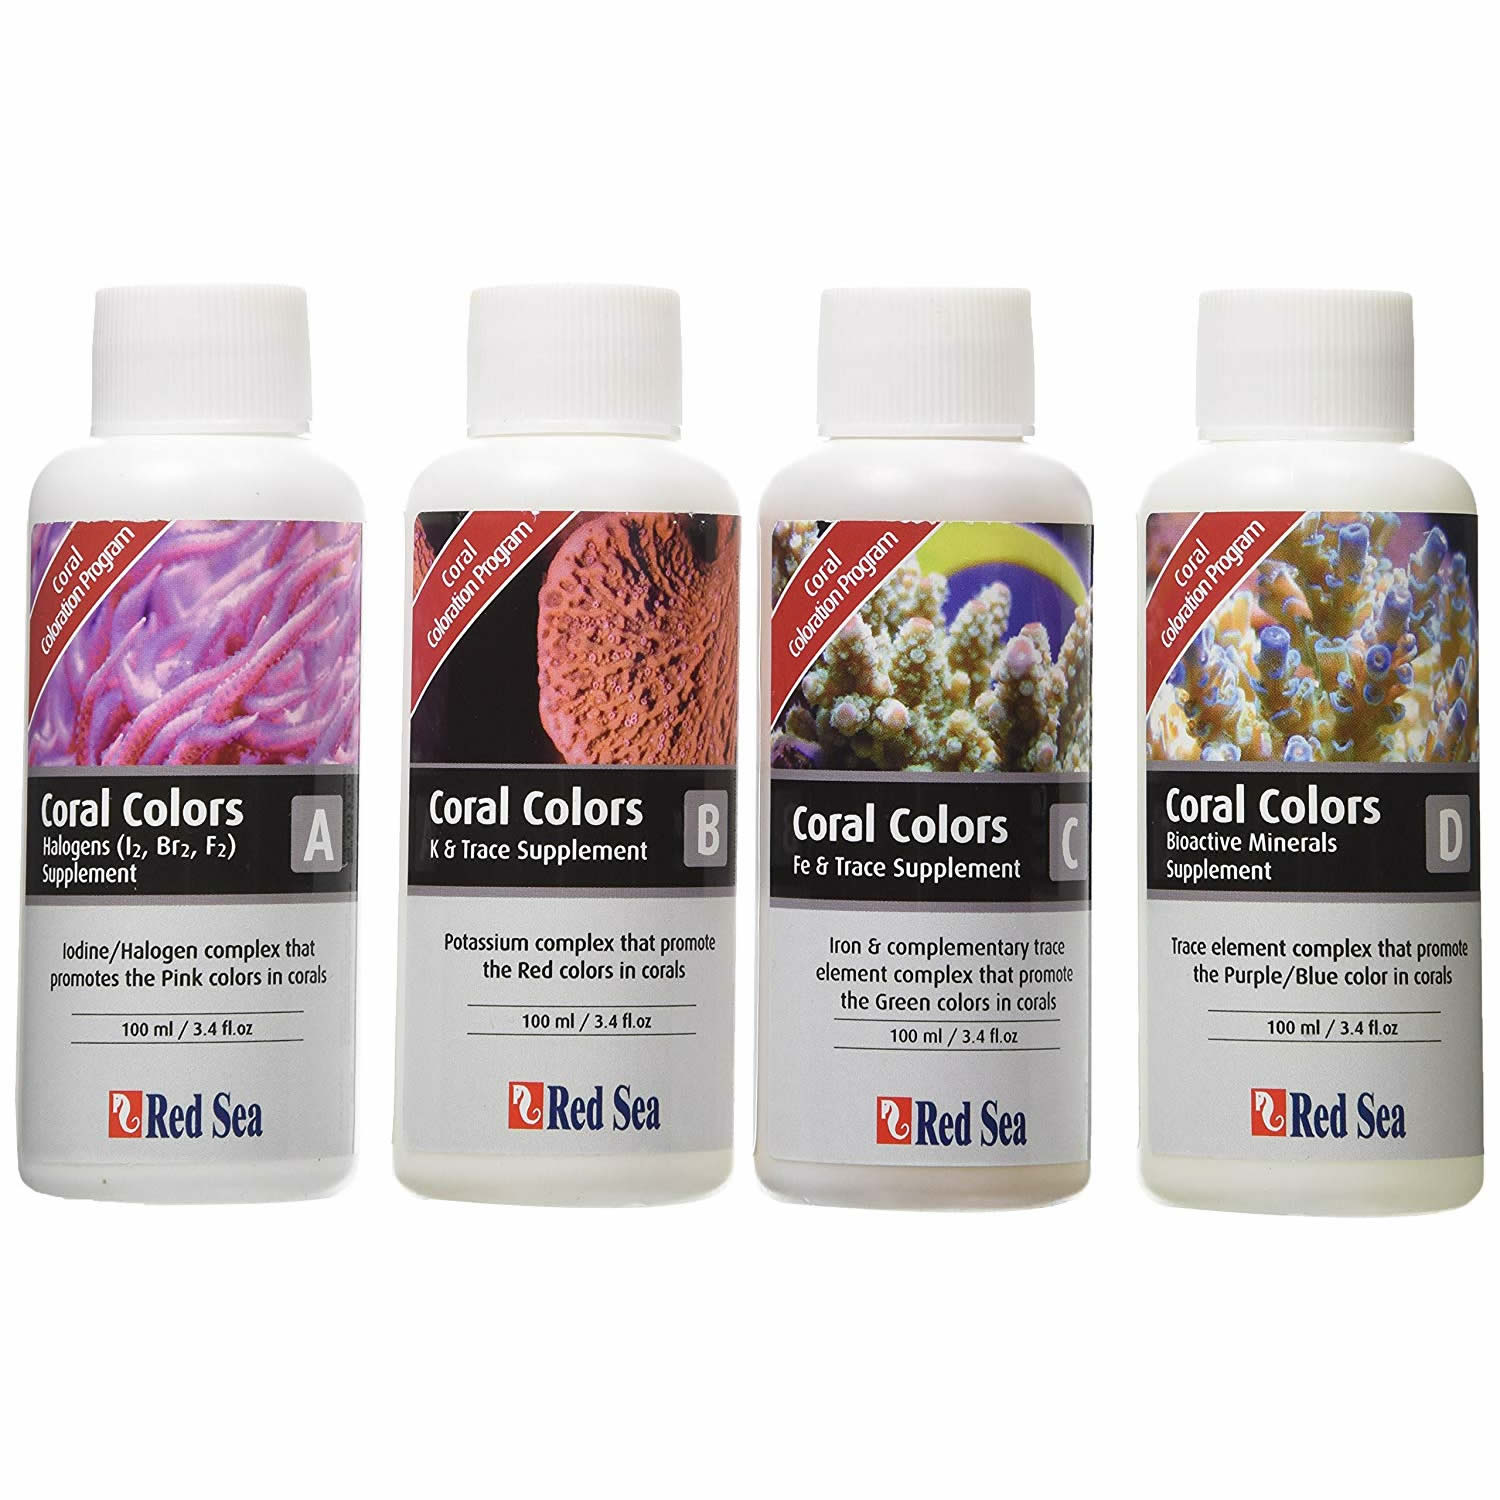 Red Sea Coral Colors ABCD 100ml each